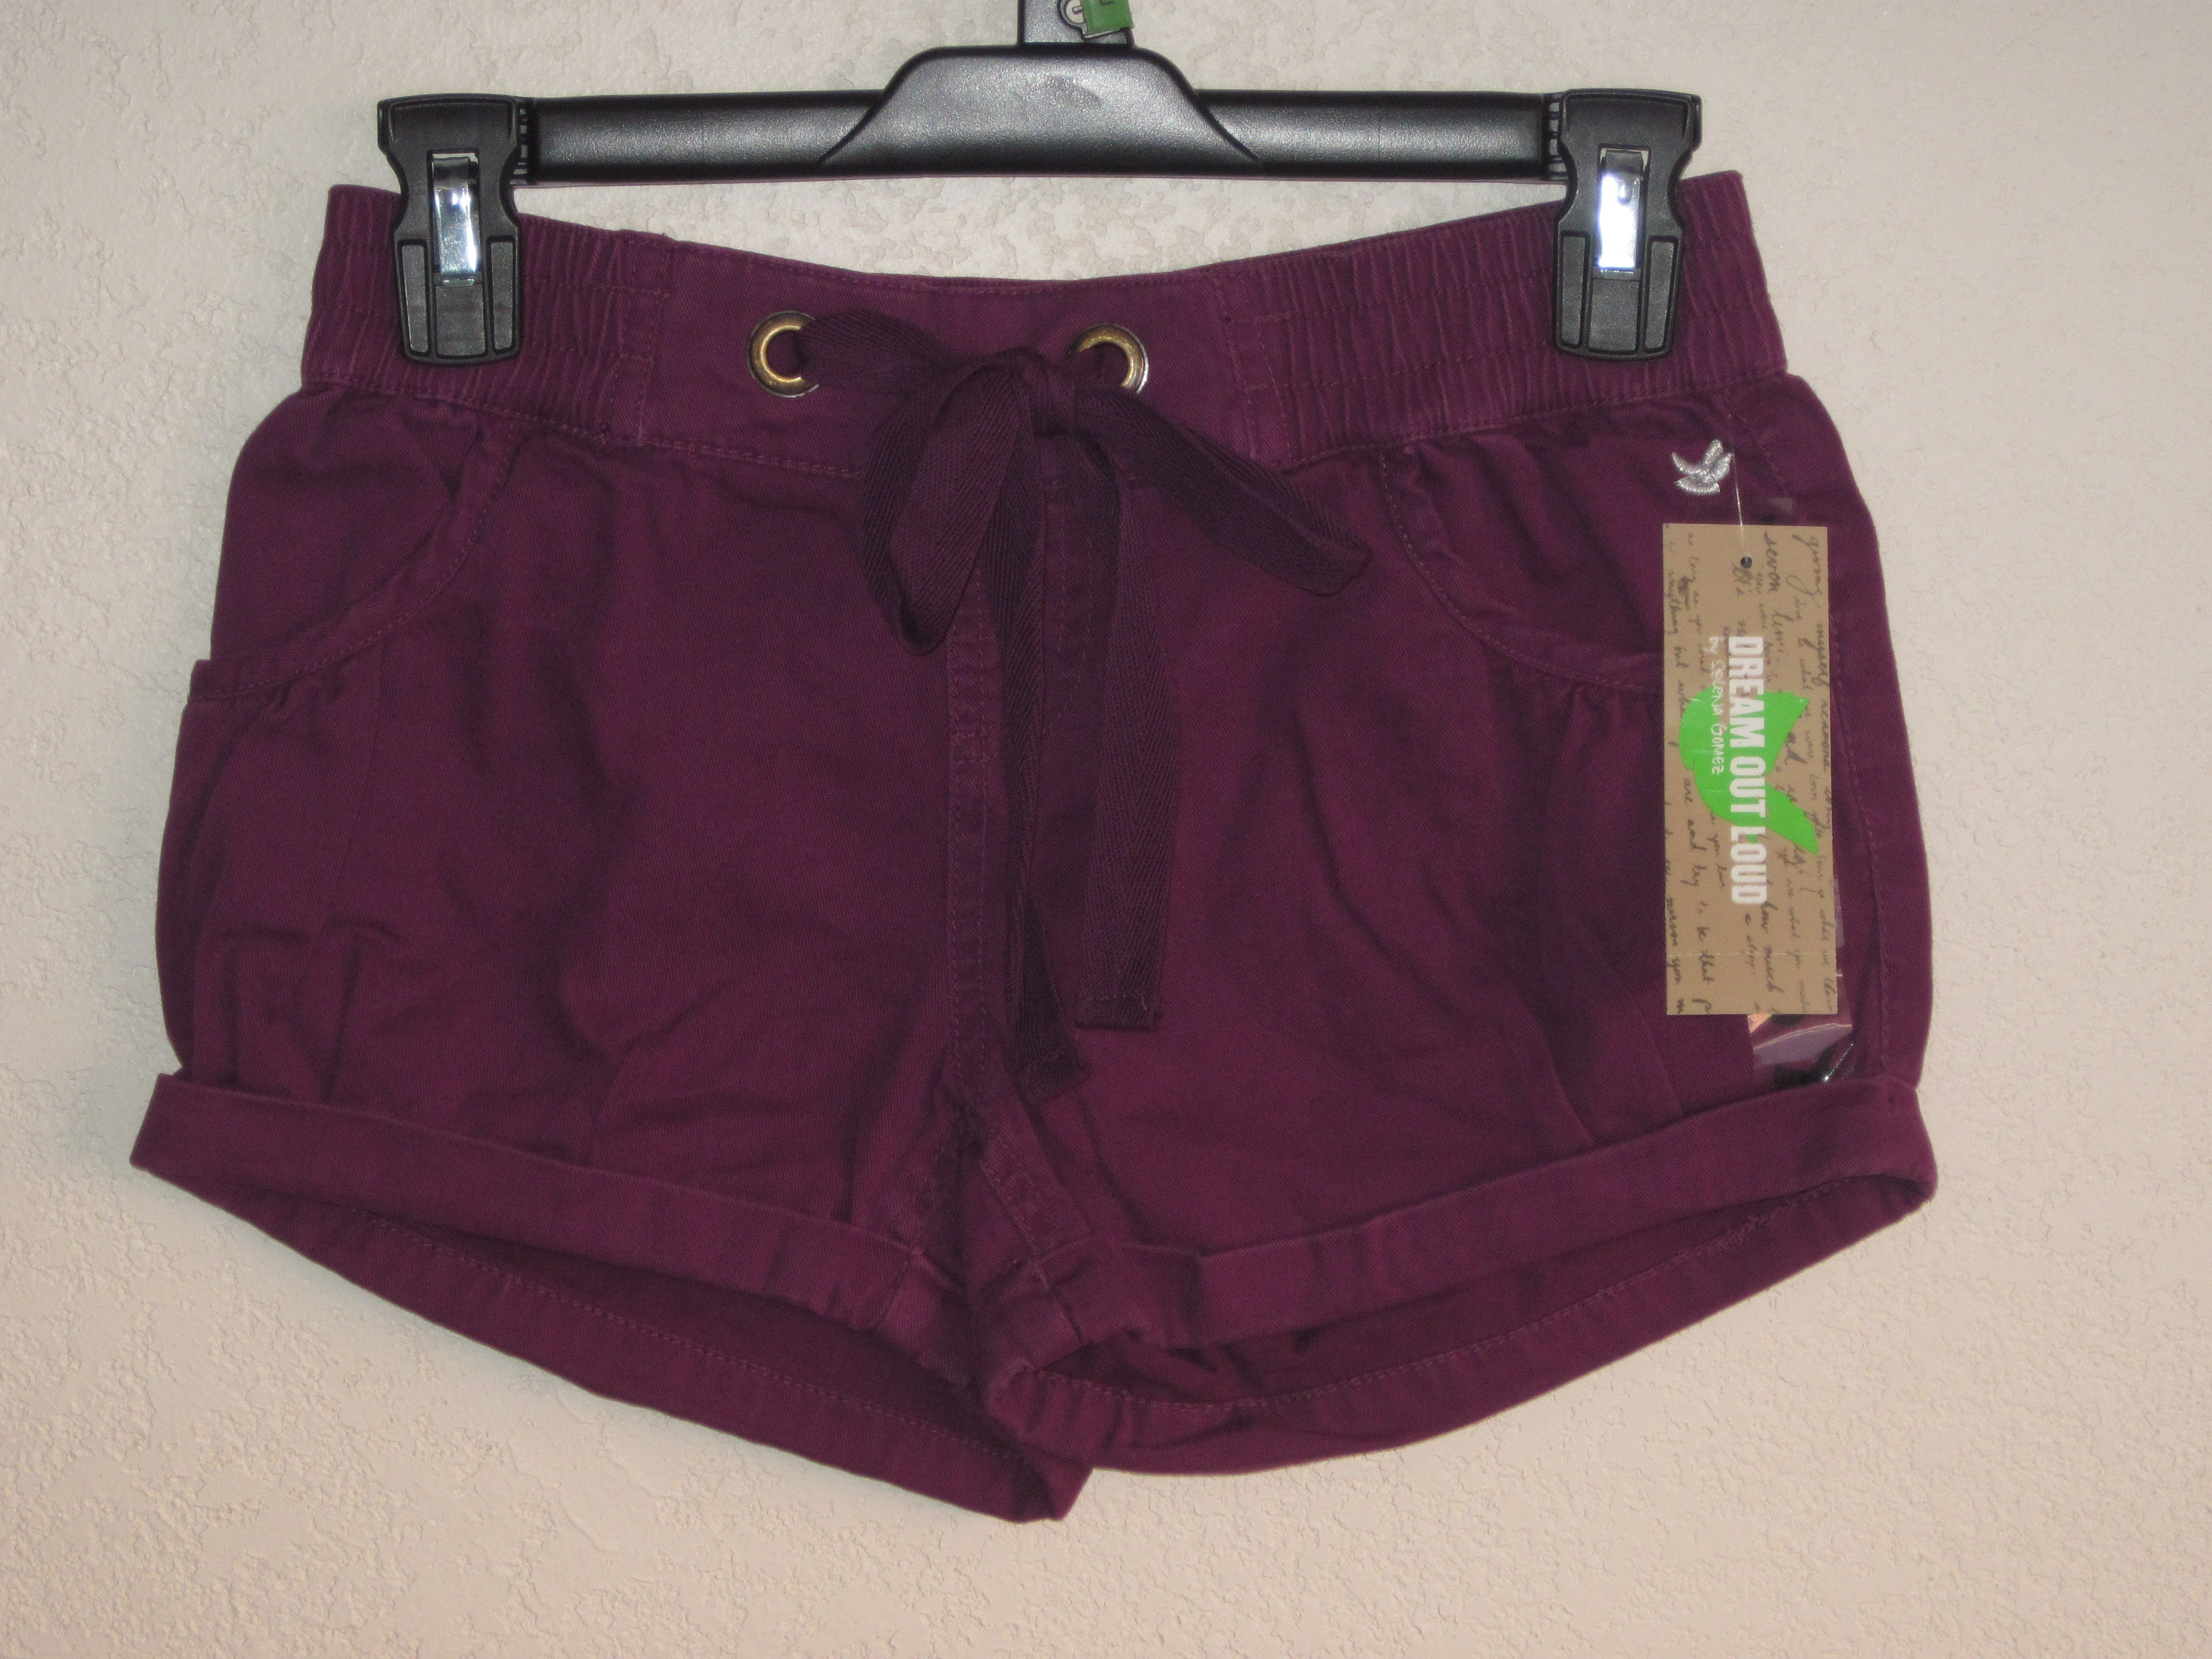 Dream Out Loud Sz Small Rolled Cuff Short Shorts (red violet)